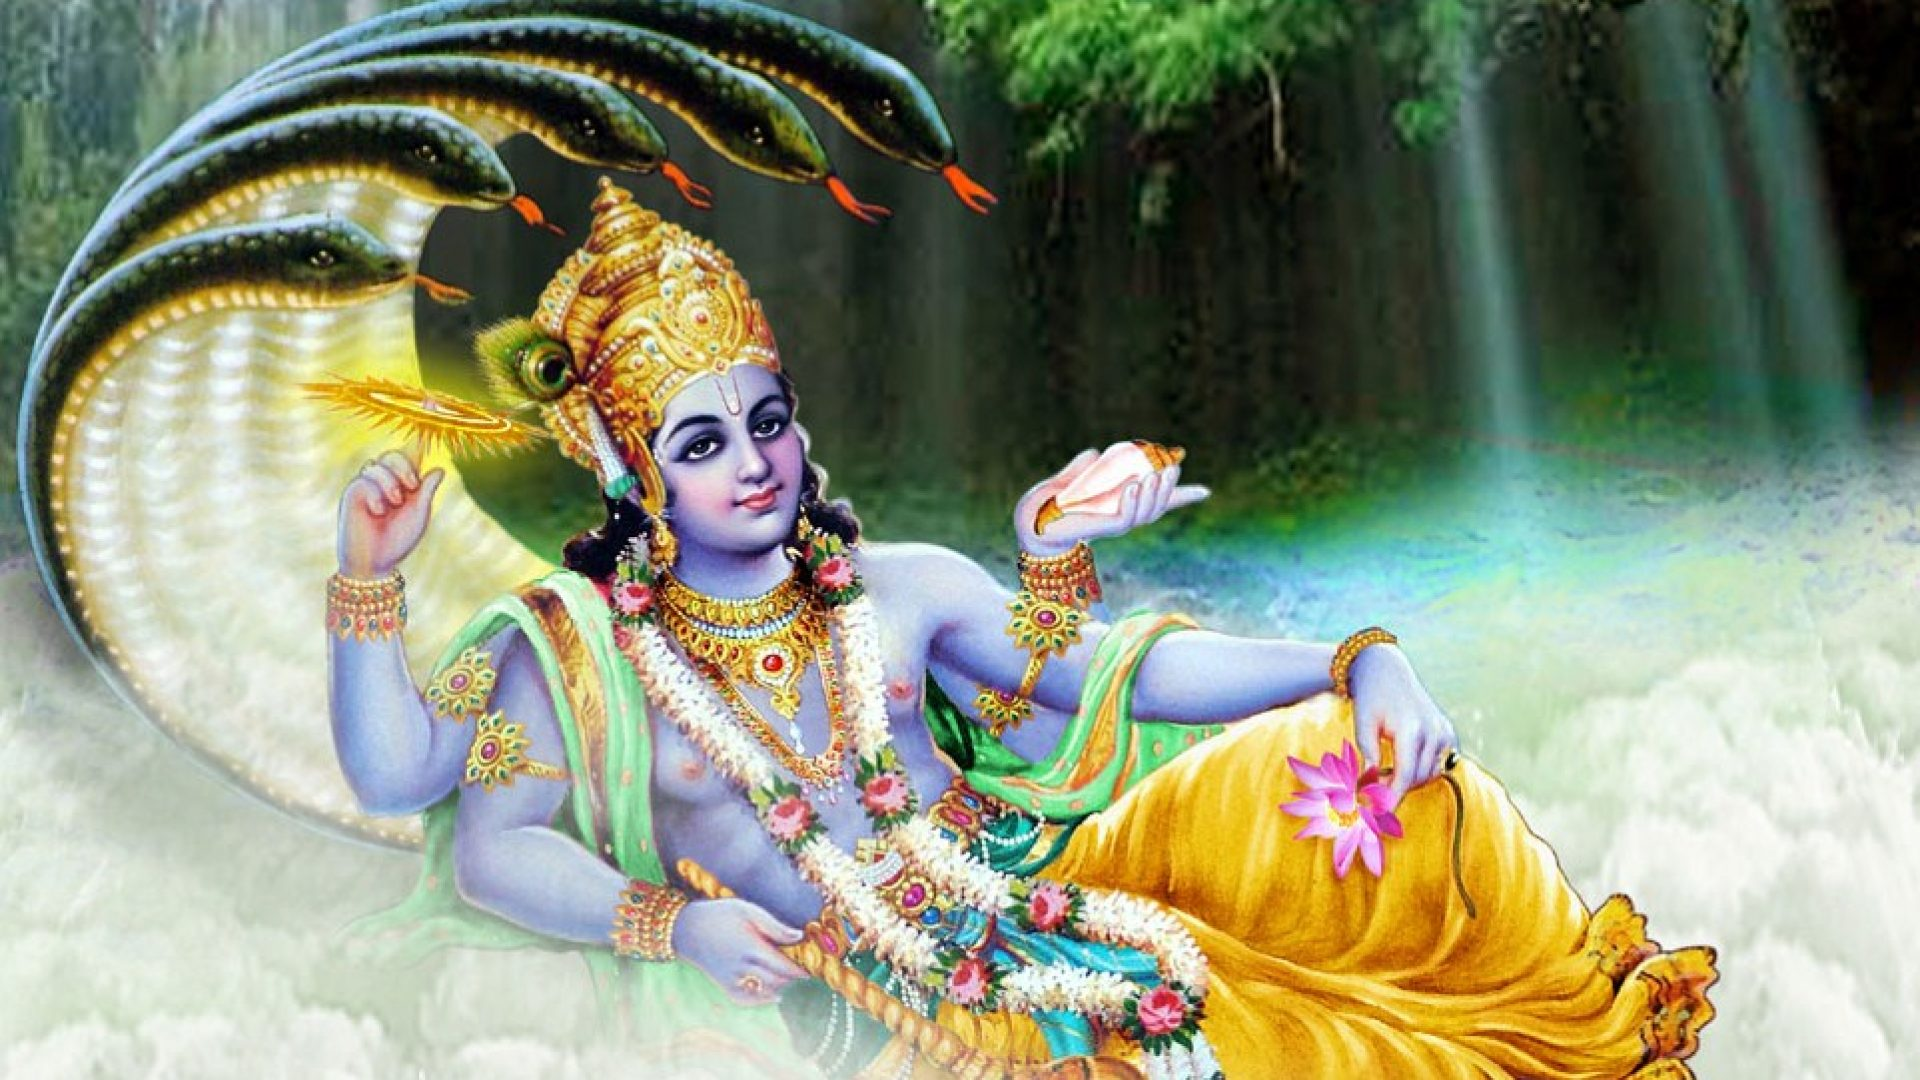 Lord Vishnu Hd Wallpapers 1080p For Desktop